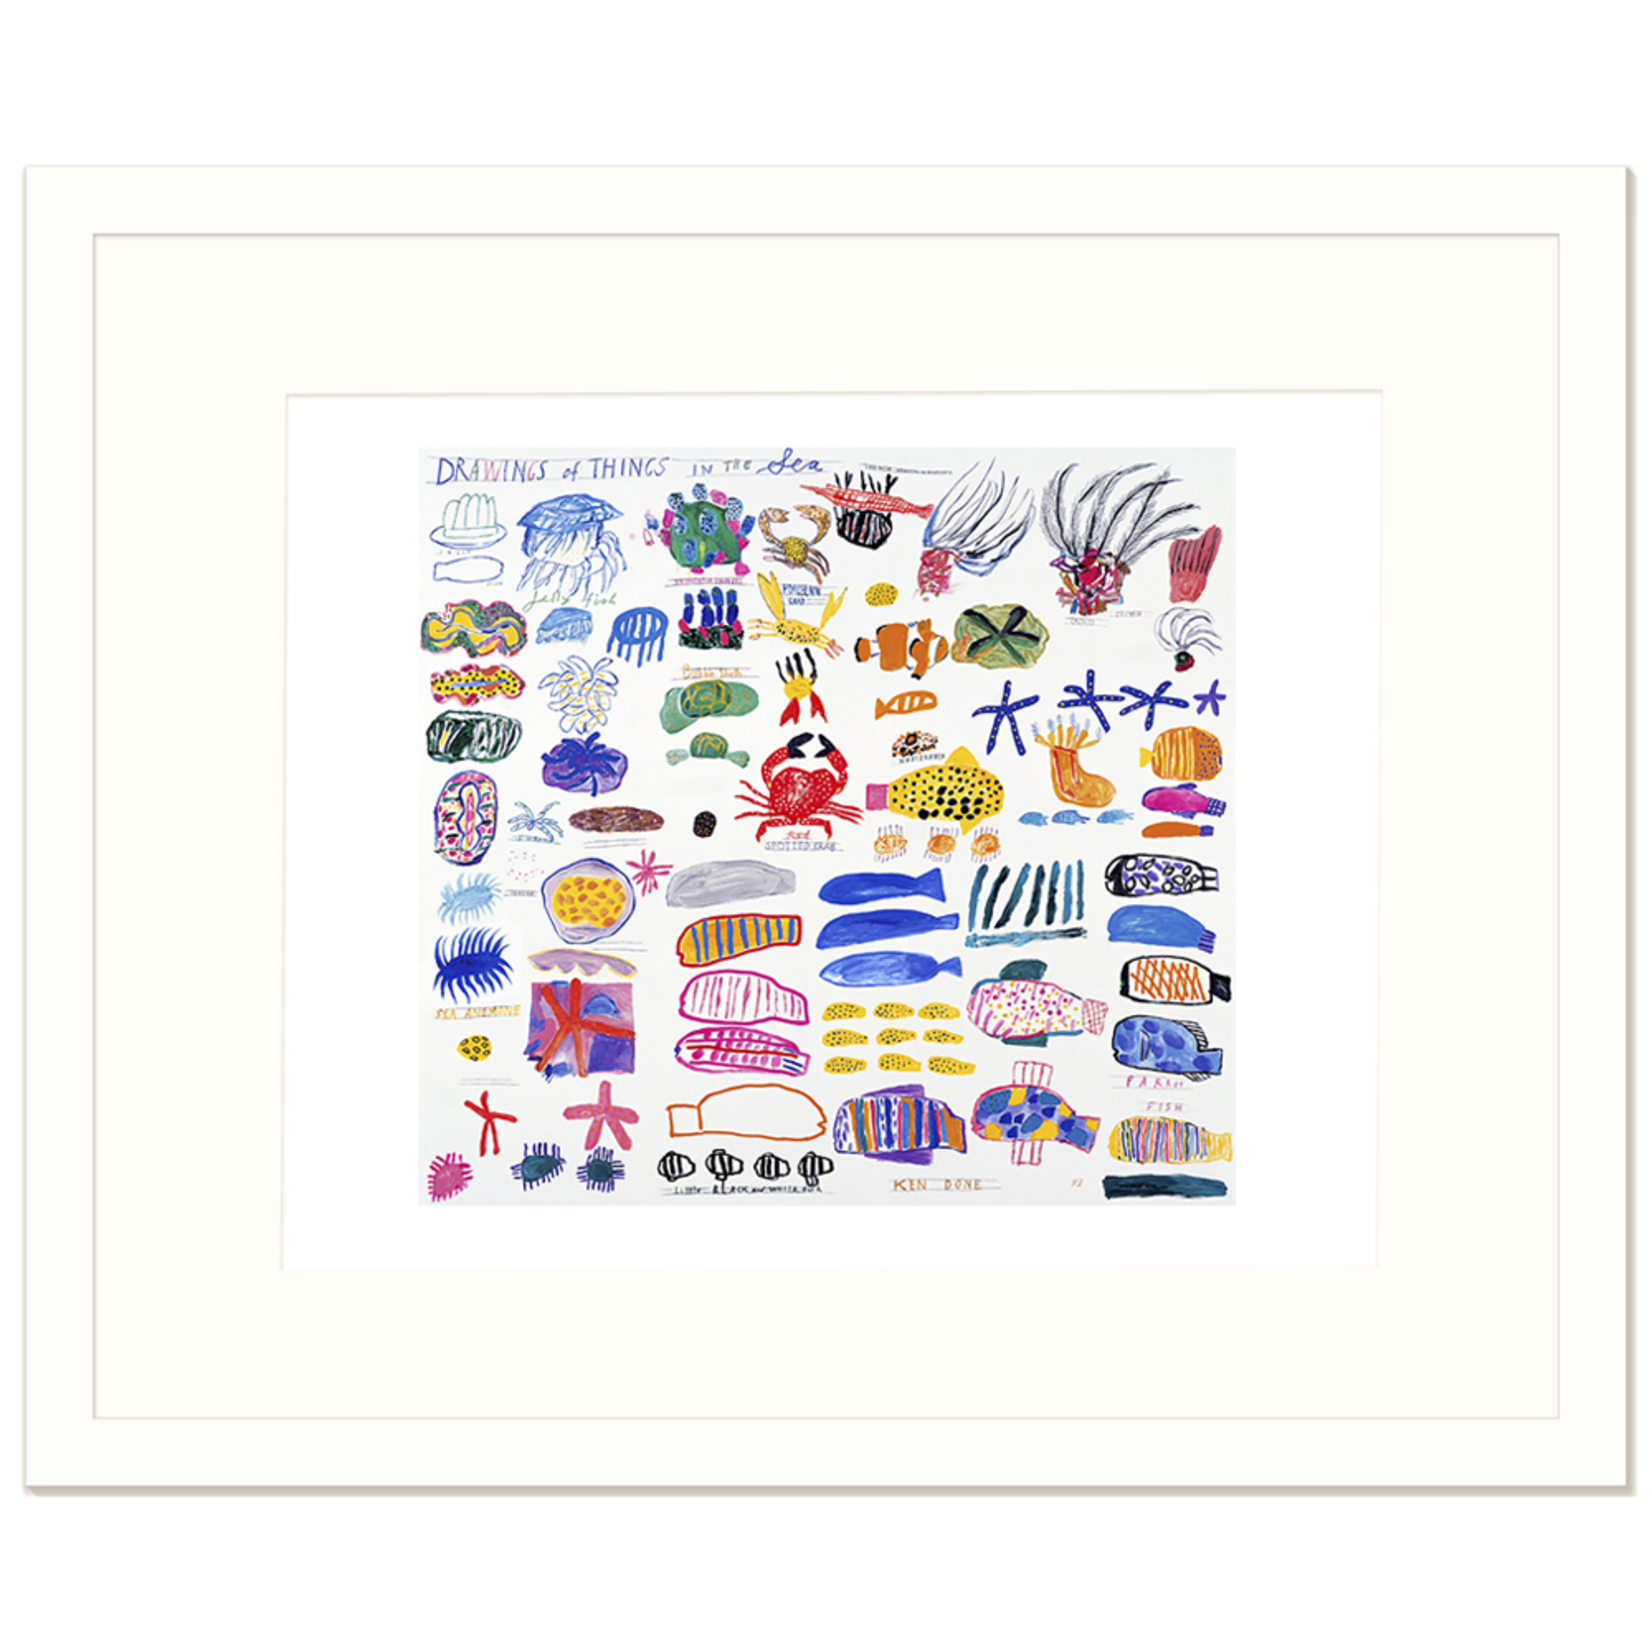 Limited Edition Prints Drawings of things in the sea, 1993